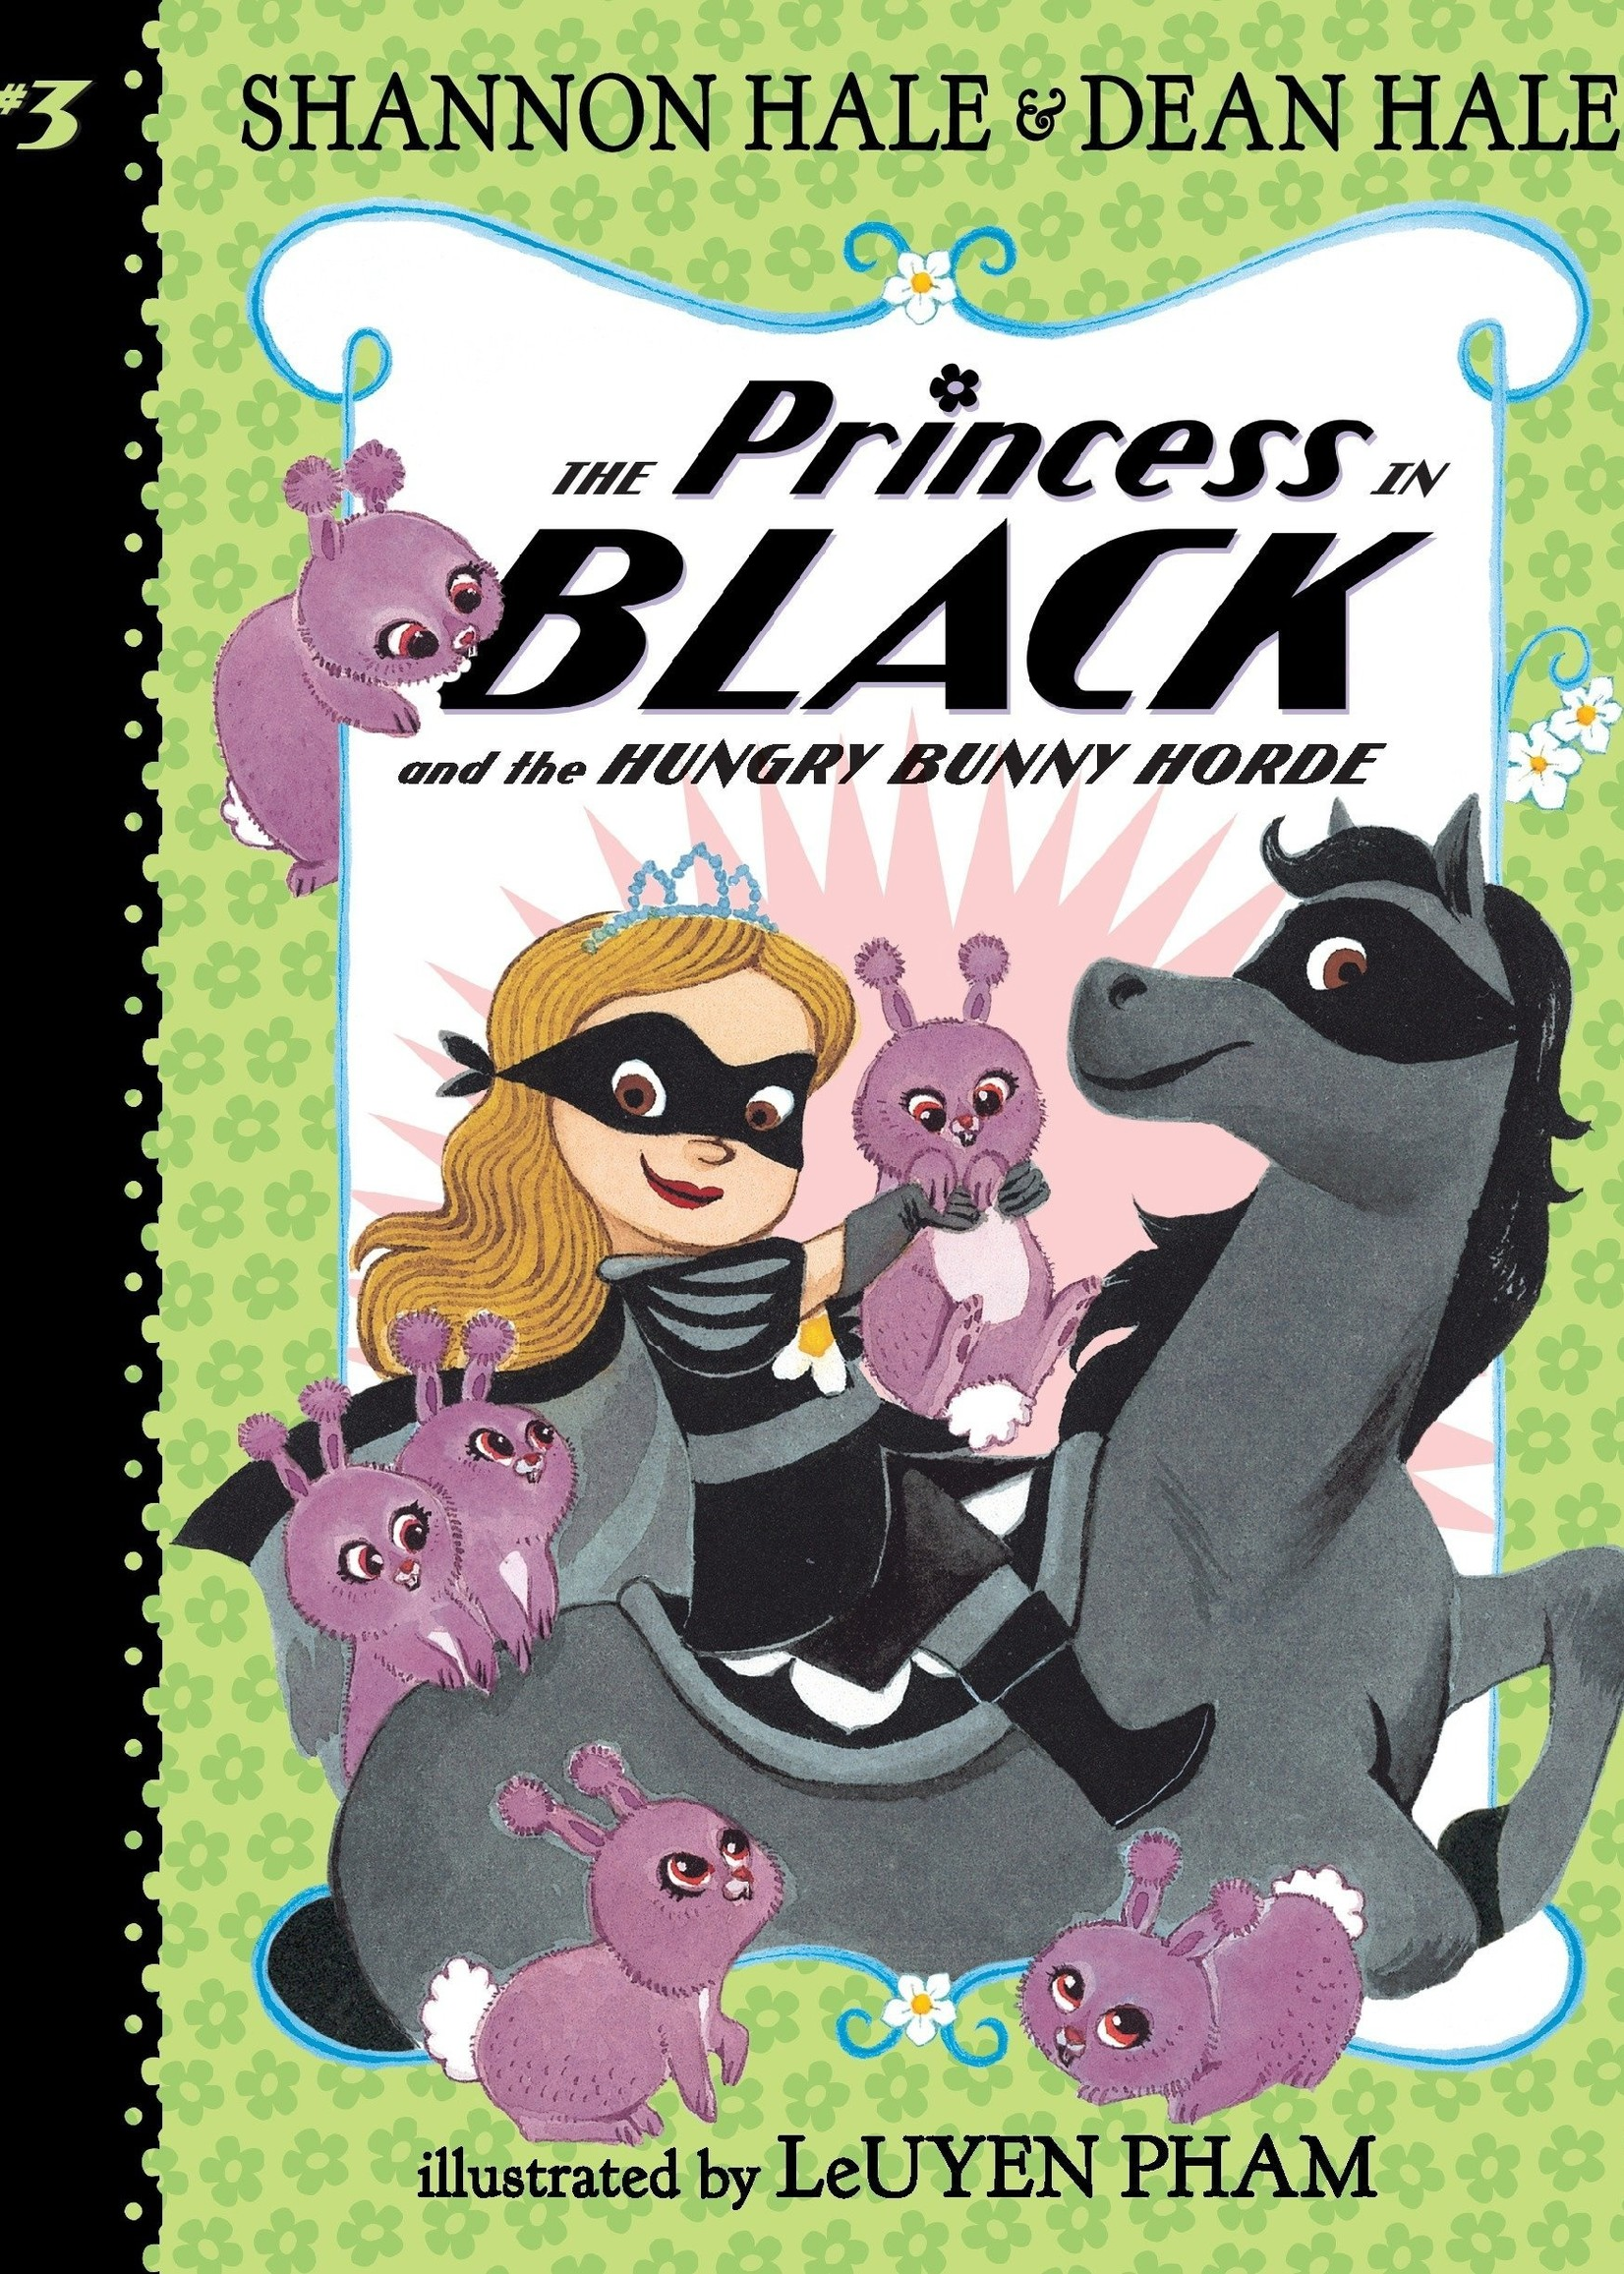 The Princess in Black and The Hungry Bunny Horde (#03) - Paperback